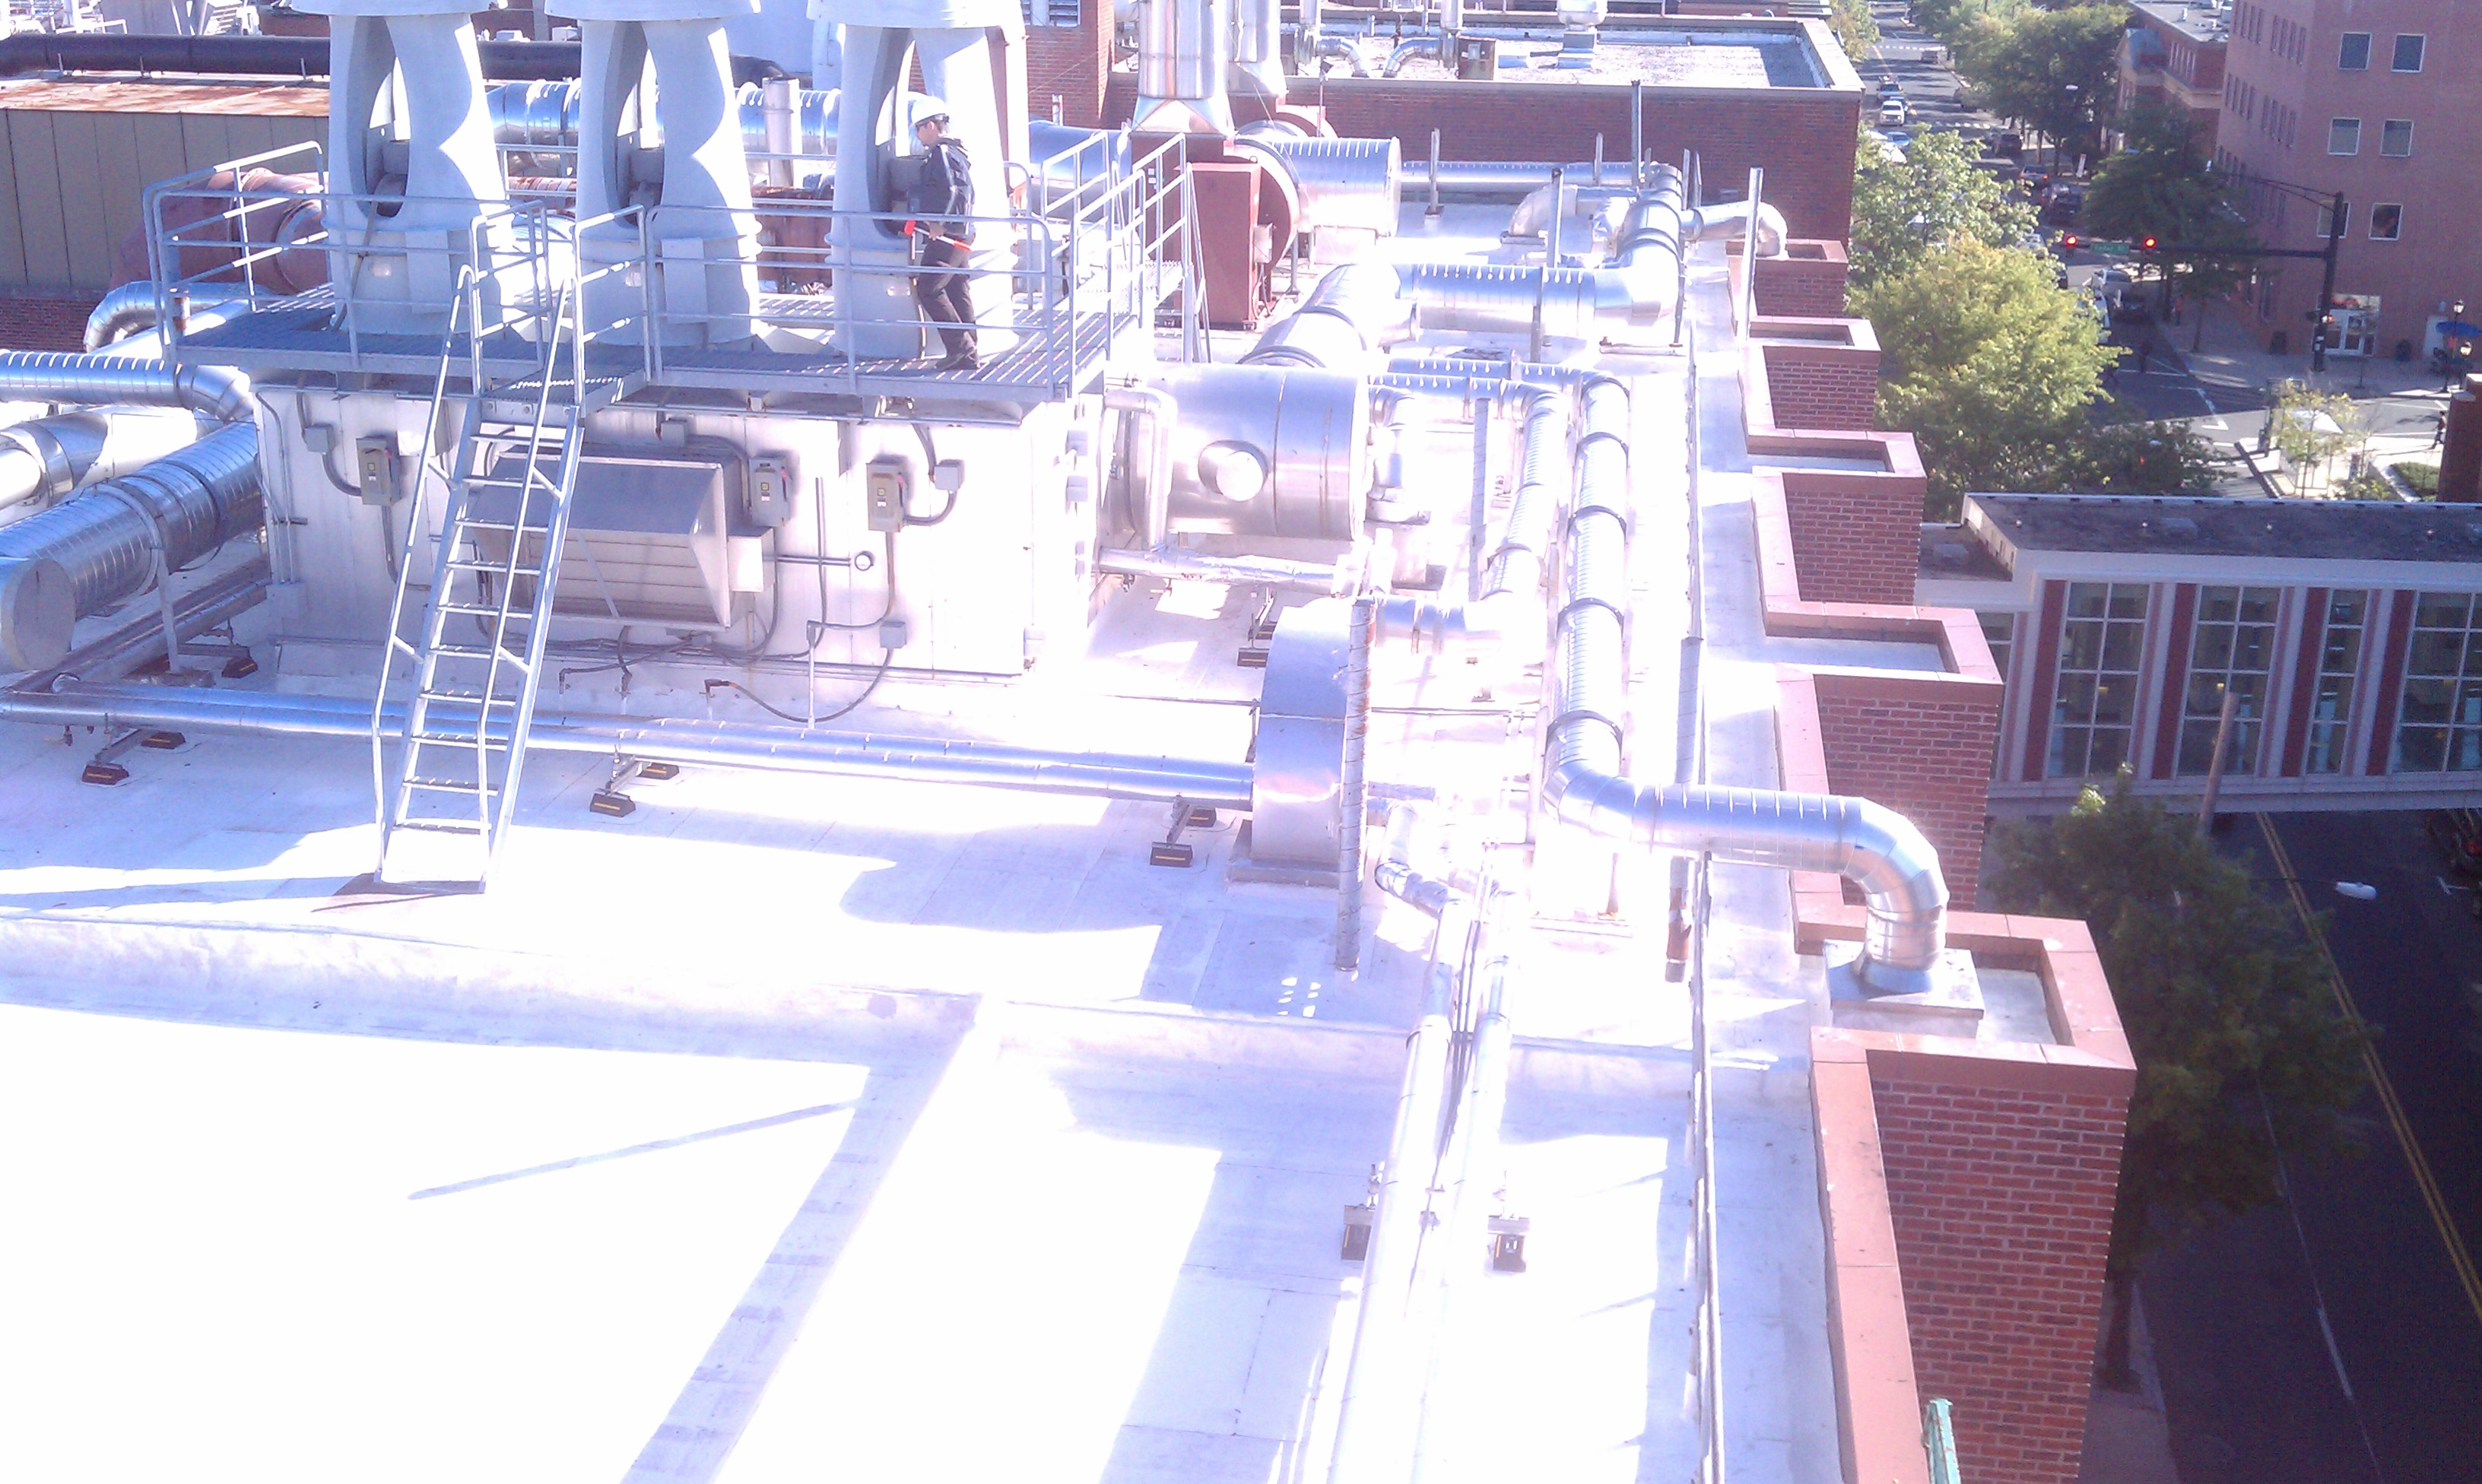 Gal-Yale LSOG Siplast project with Barrett Roofing 2011